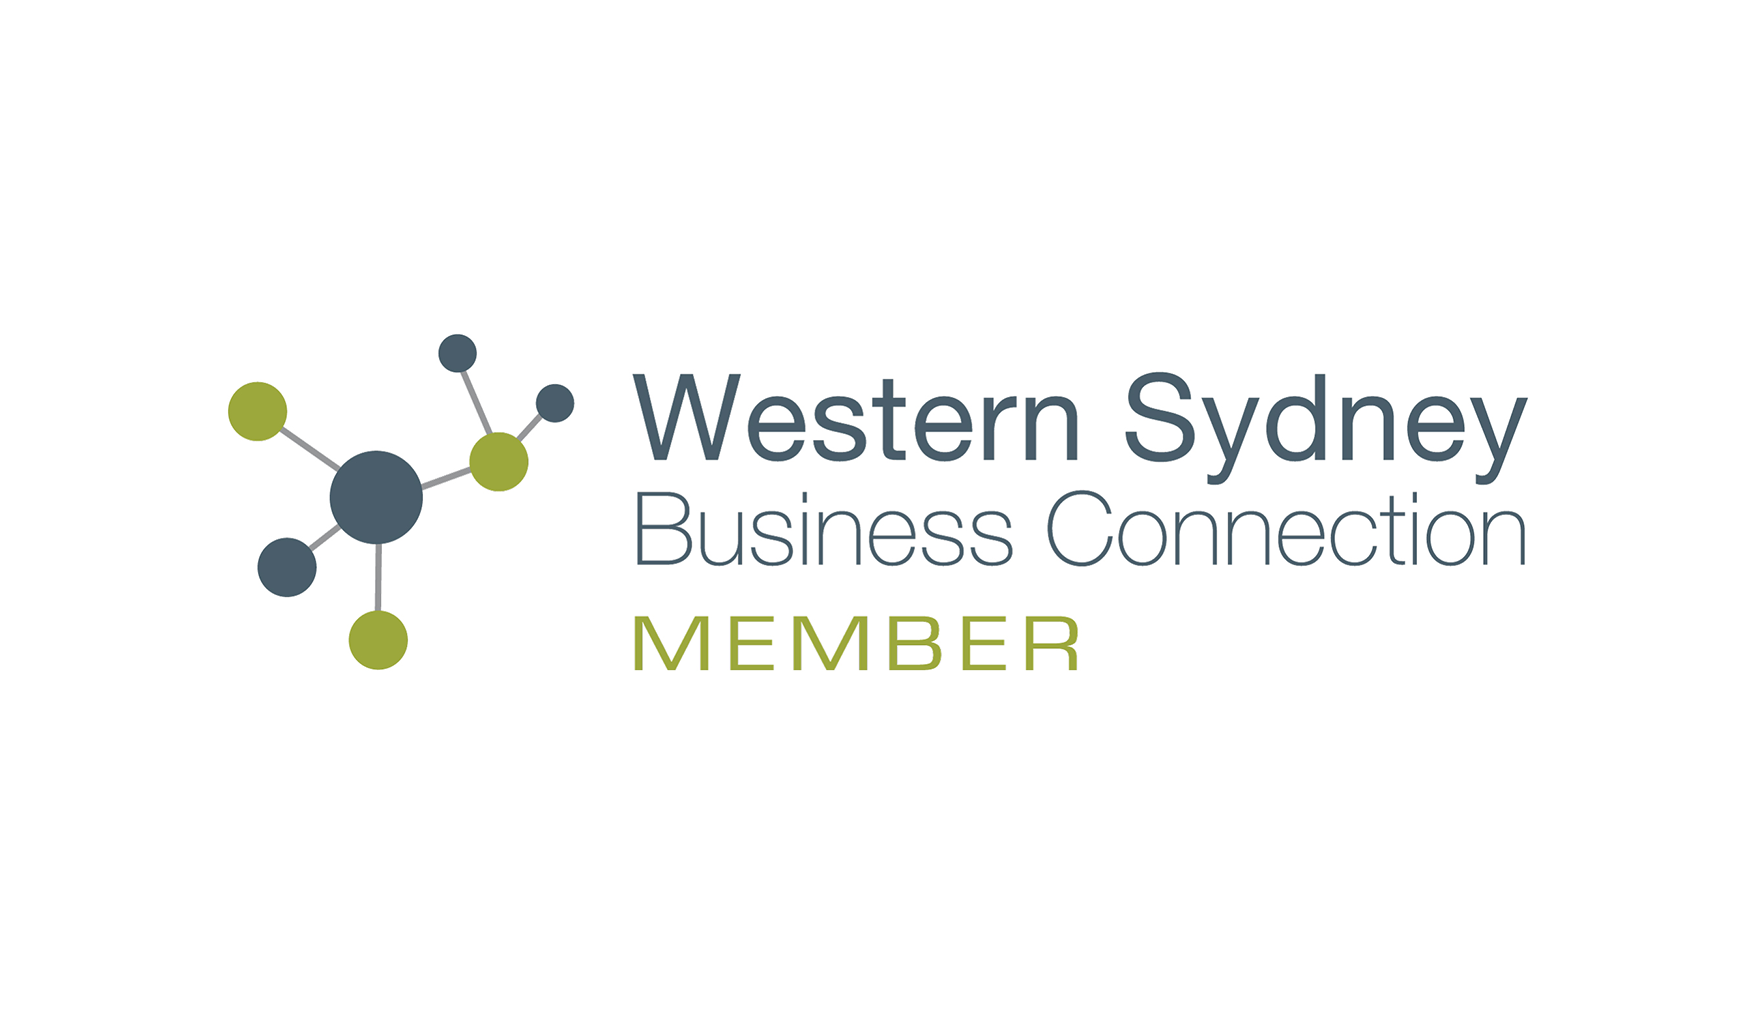 Western Sydney Business Connection Member Watertight project